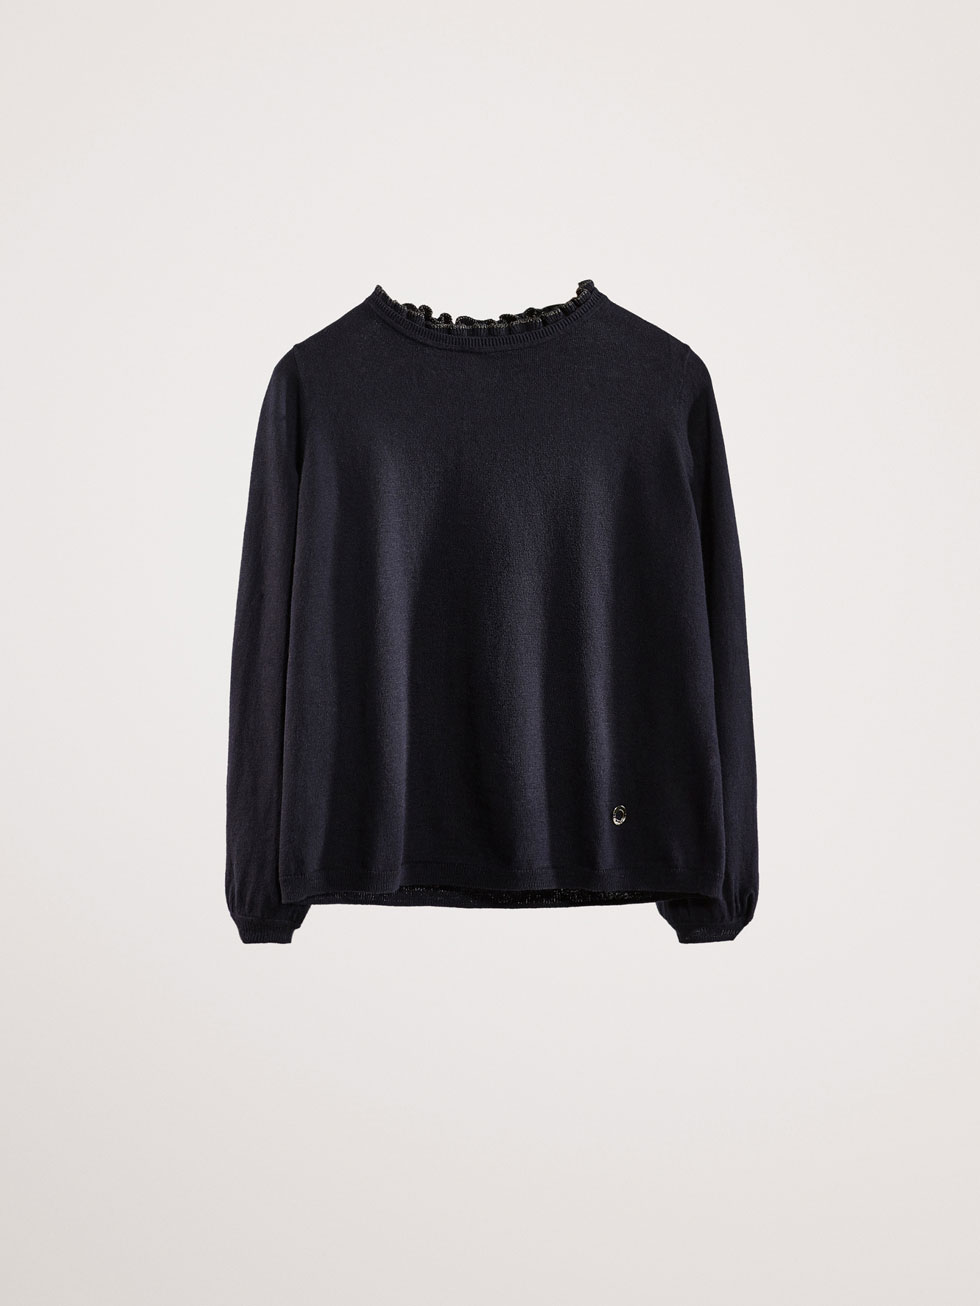 Cotton/Cashmere Sweater With Ruffle Detail by Massimo Dutti